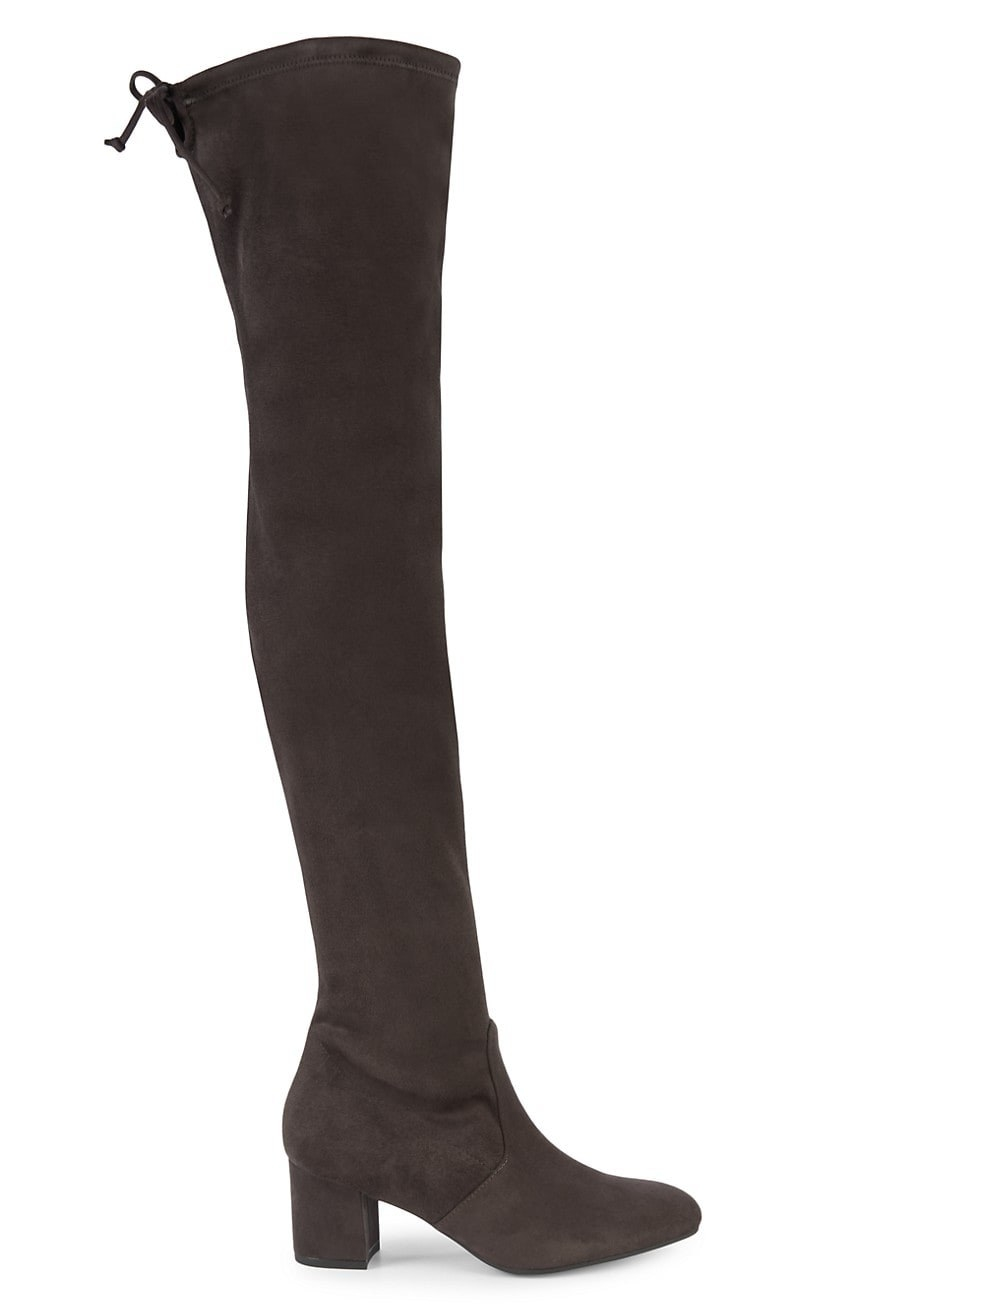 The black boots with drawstring at the top and a block heel